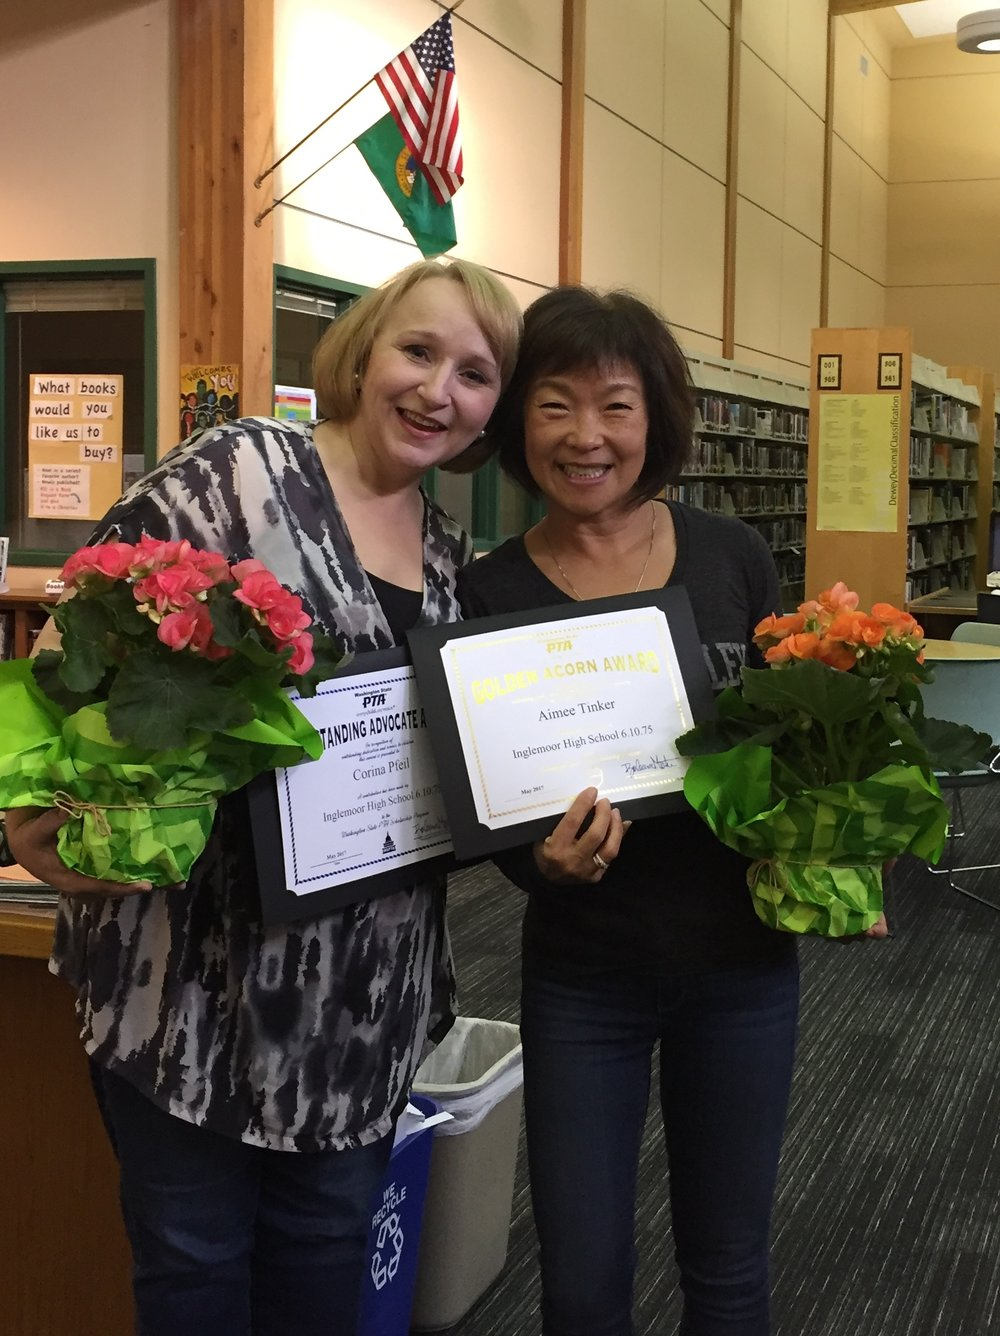 Corina Pfeil (left) is the recipient of the Outstanding Advocate and Aimee Tinker was awarded the Golden Acorn.  A contribution was made to the Washington State PTA Scholarship Fund in honor of all winners.